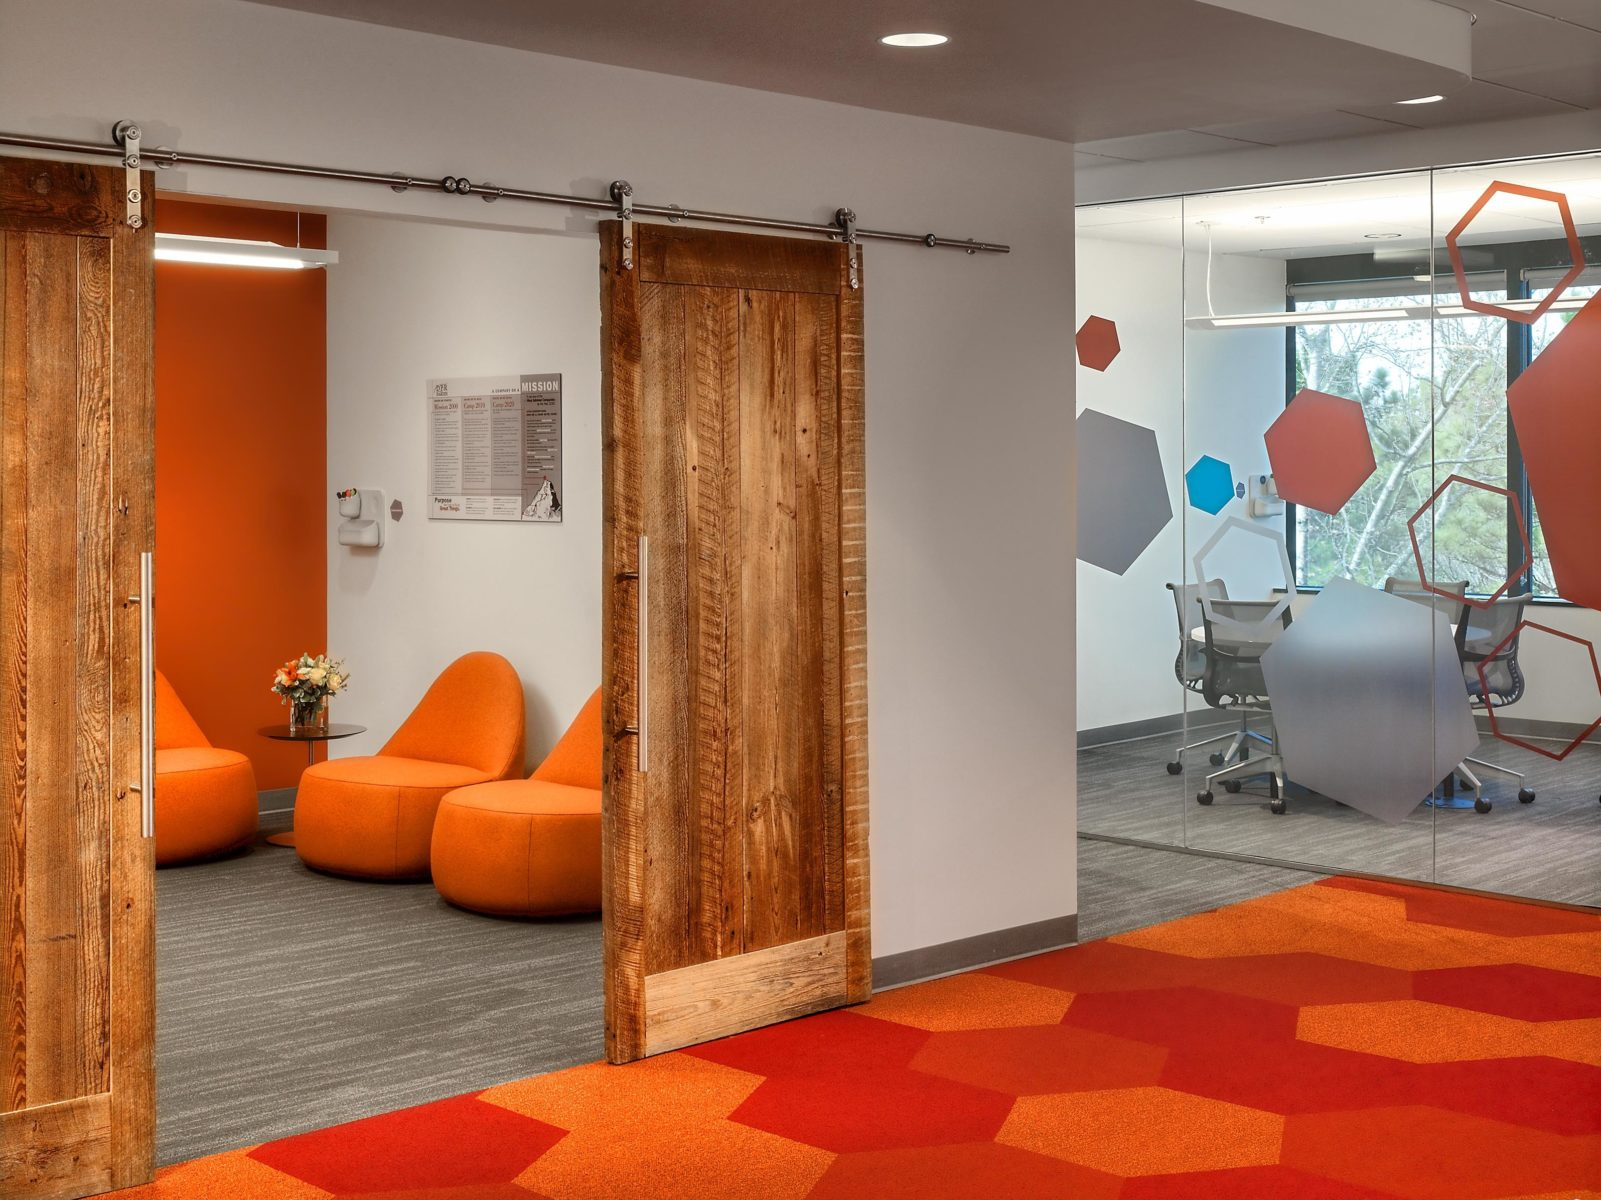 Office interior with wood barn doors and bright orange furniture and carpets.